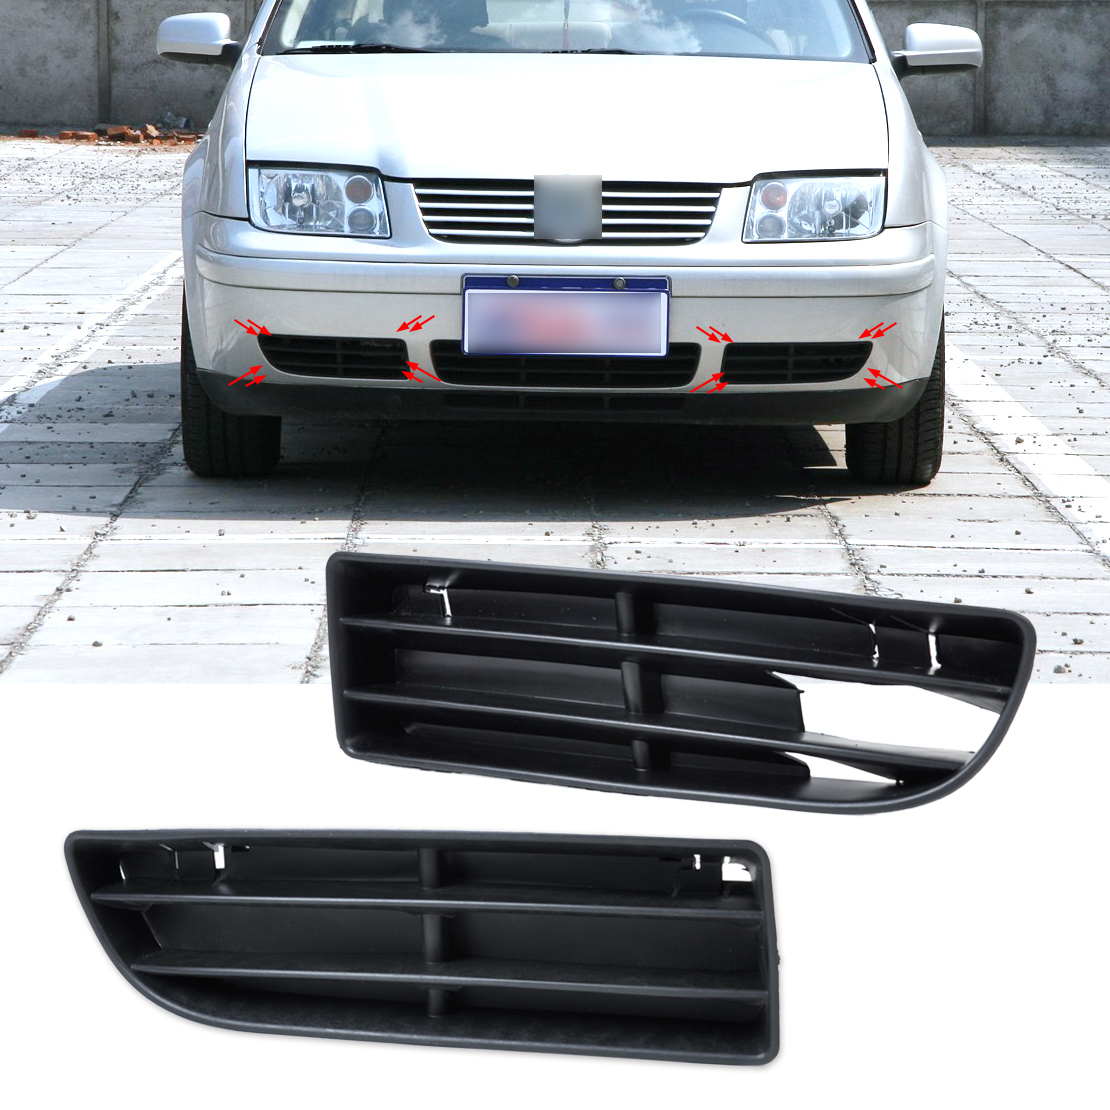 DWCX 1J5853665B, 1J5853666C Front Lower Grille Bumper Vent for Volkswagen VW Jetta Bora MK4 1999 2000 2001 2002 2003 2004 jeazea glove box light storage compartment lamp 1j0947301 1j0 947 301 for vw jetta golf bora octavia 2000 2001 2002 2003 2004